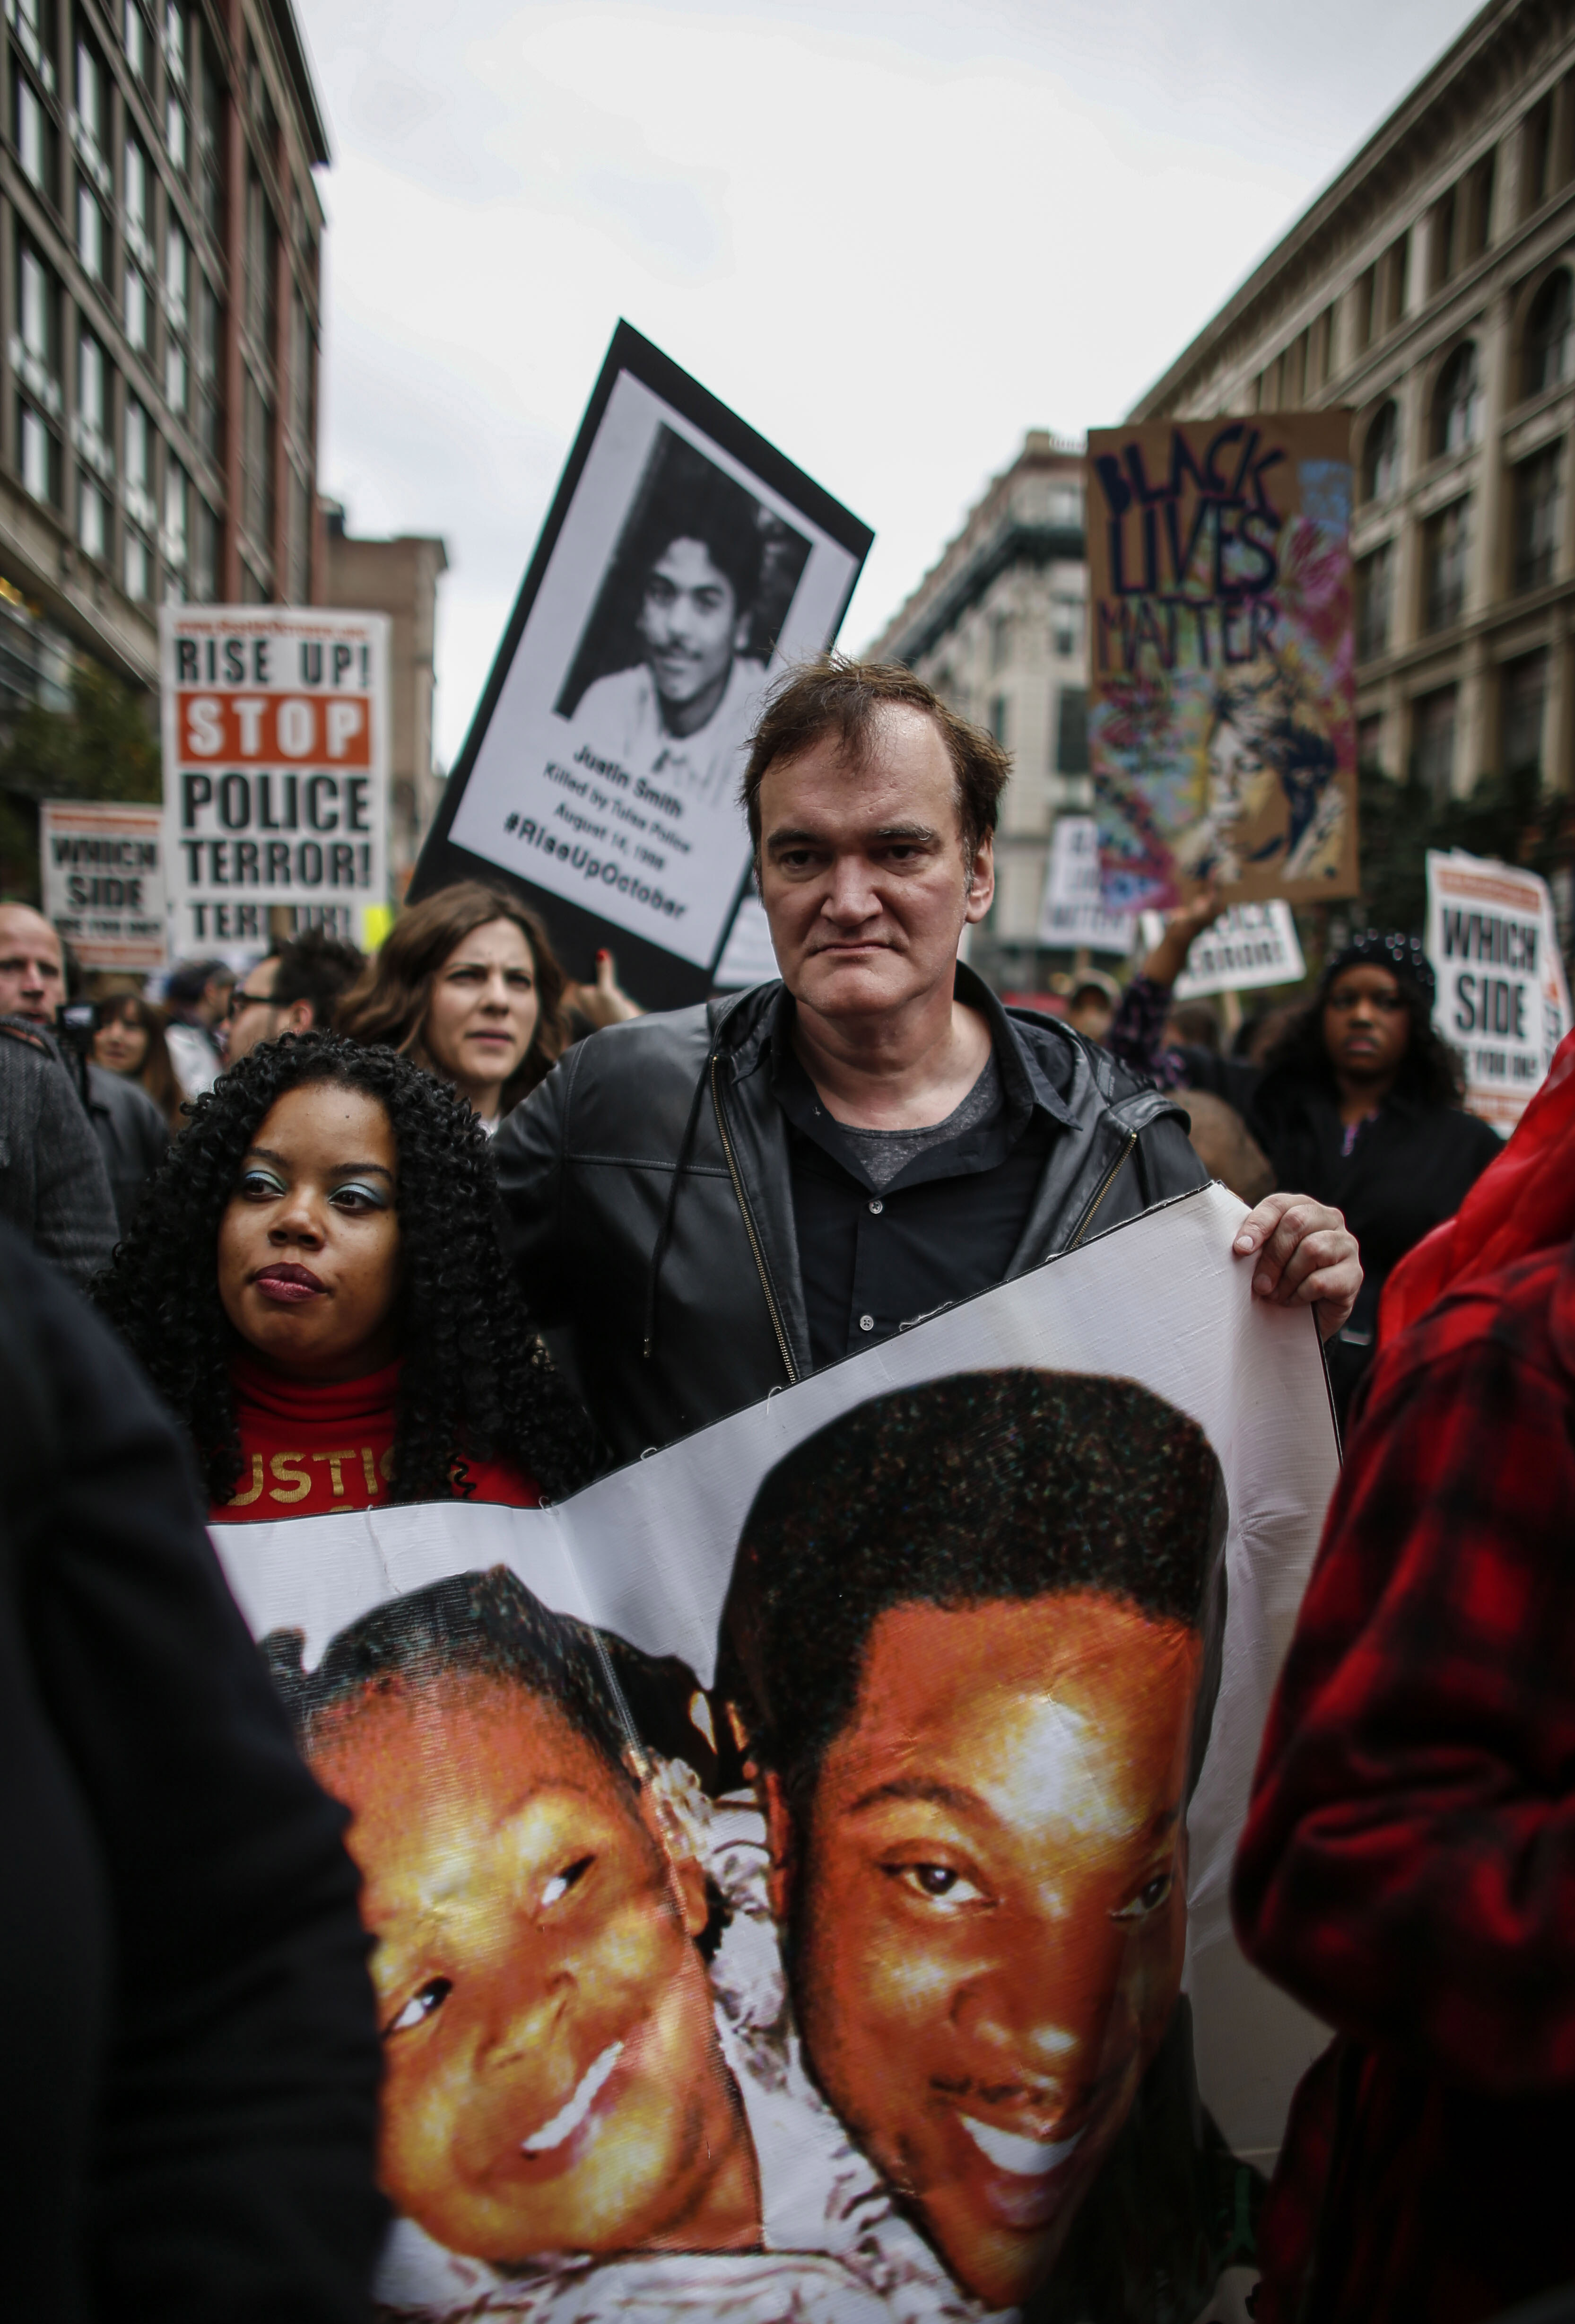 Director Quentin Tarantino attends a march to denounce police brutality in Washington Square Park October 24, 2015 in New York City. (Kena Betancur--Getty Images)